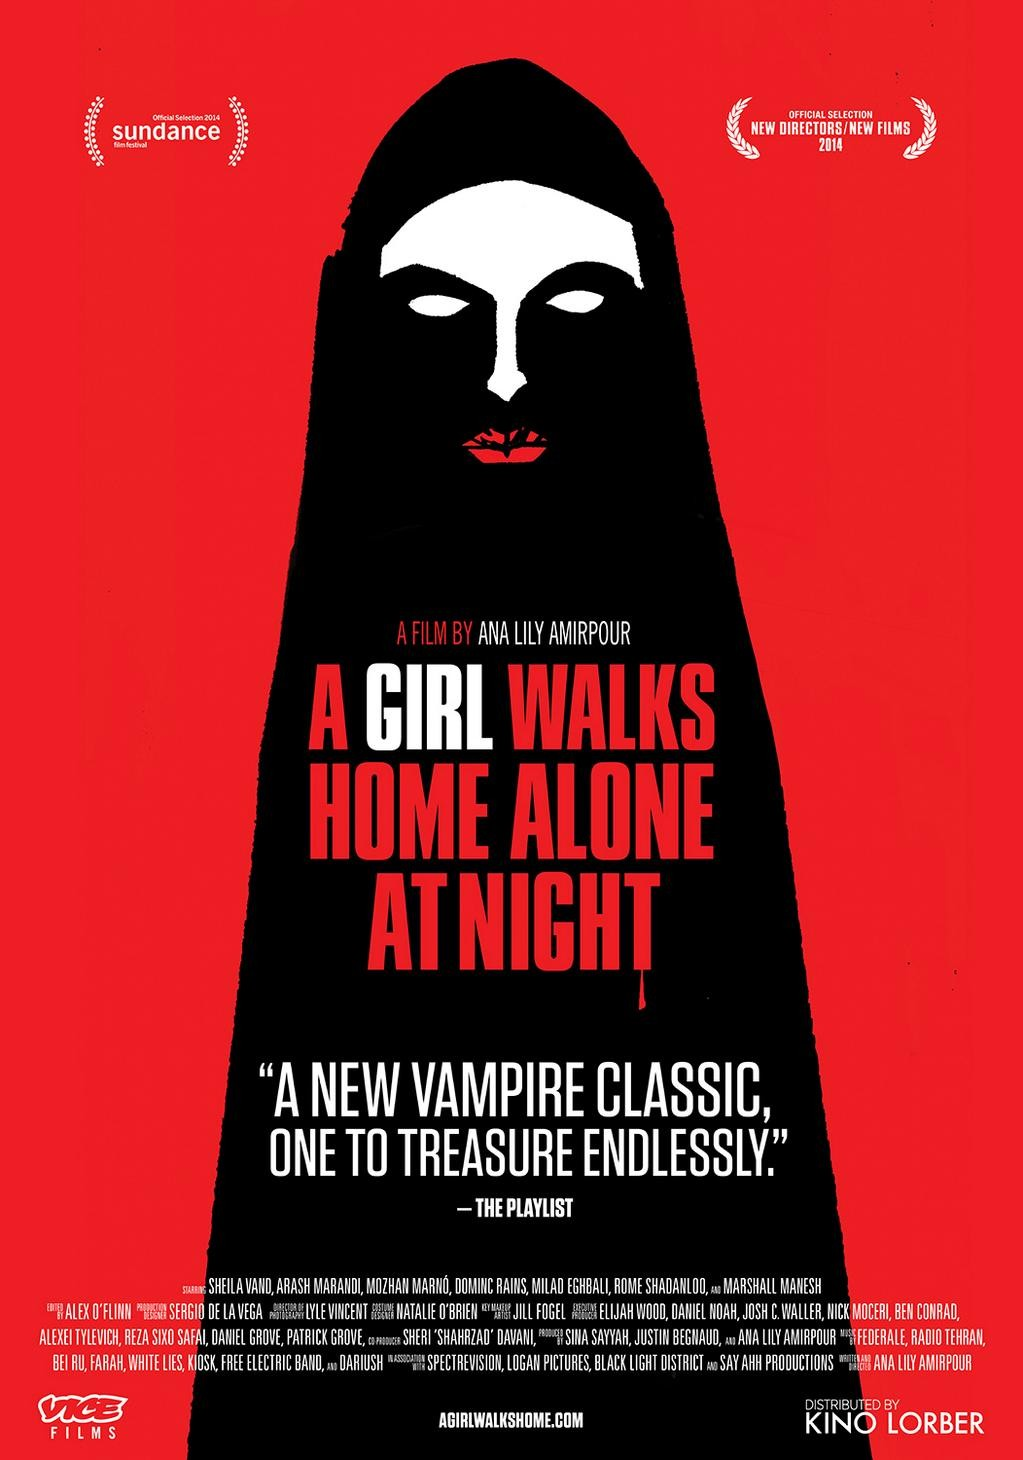 Movie poster for A Girl Walks Home Alone at Night